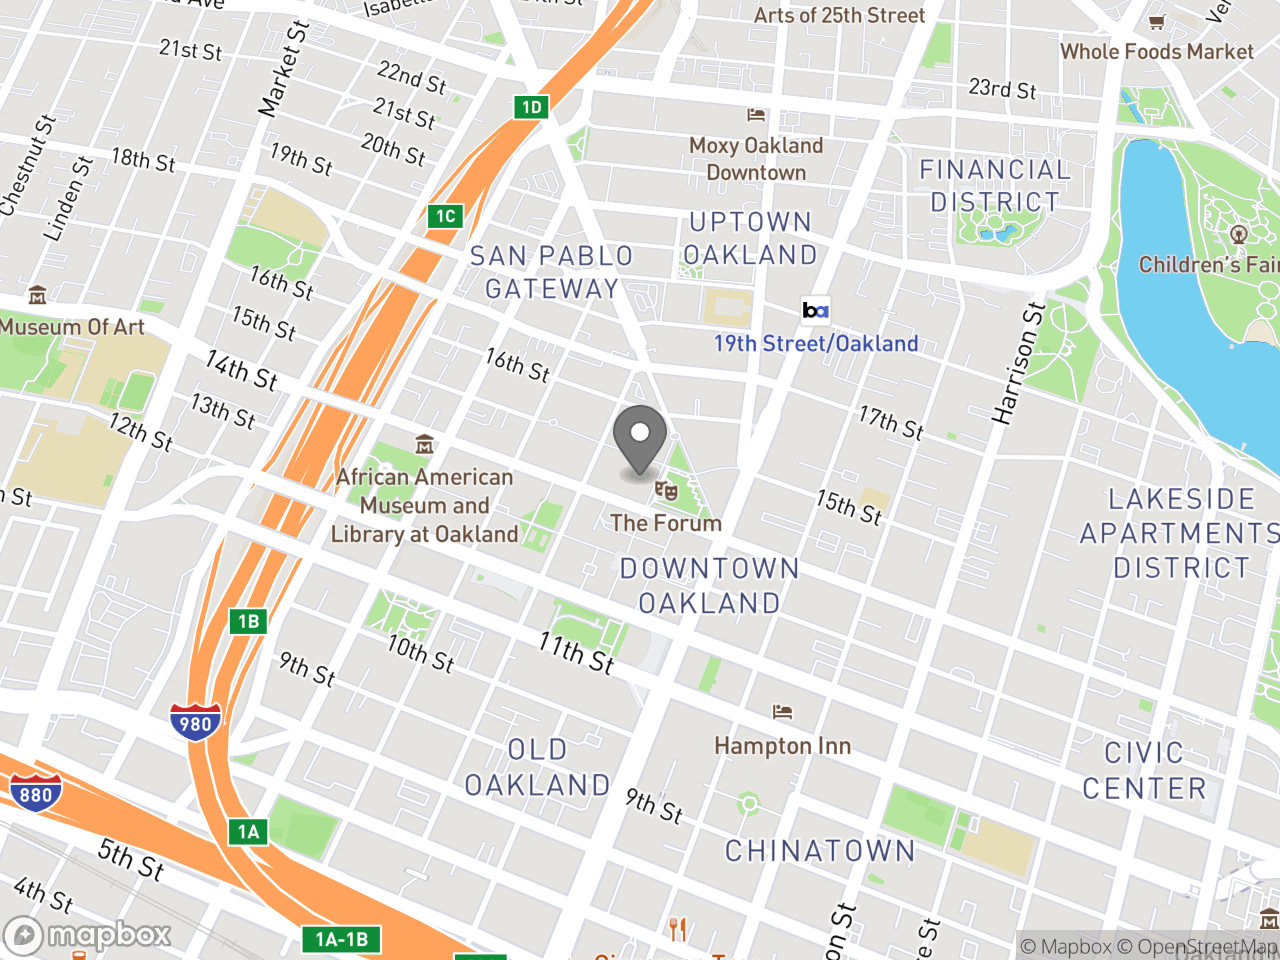 Map image for Newsroom, located at 1 Frank H Ogawa Plaza in Oakland, CA 94612